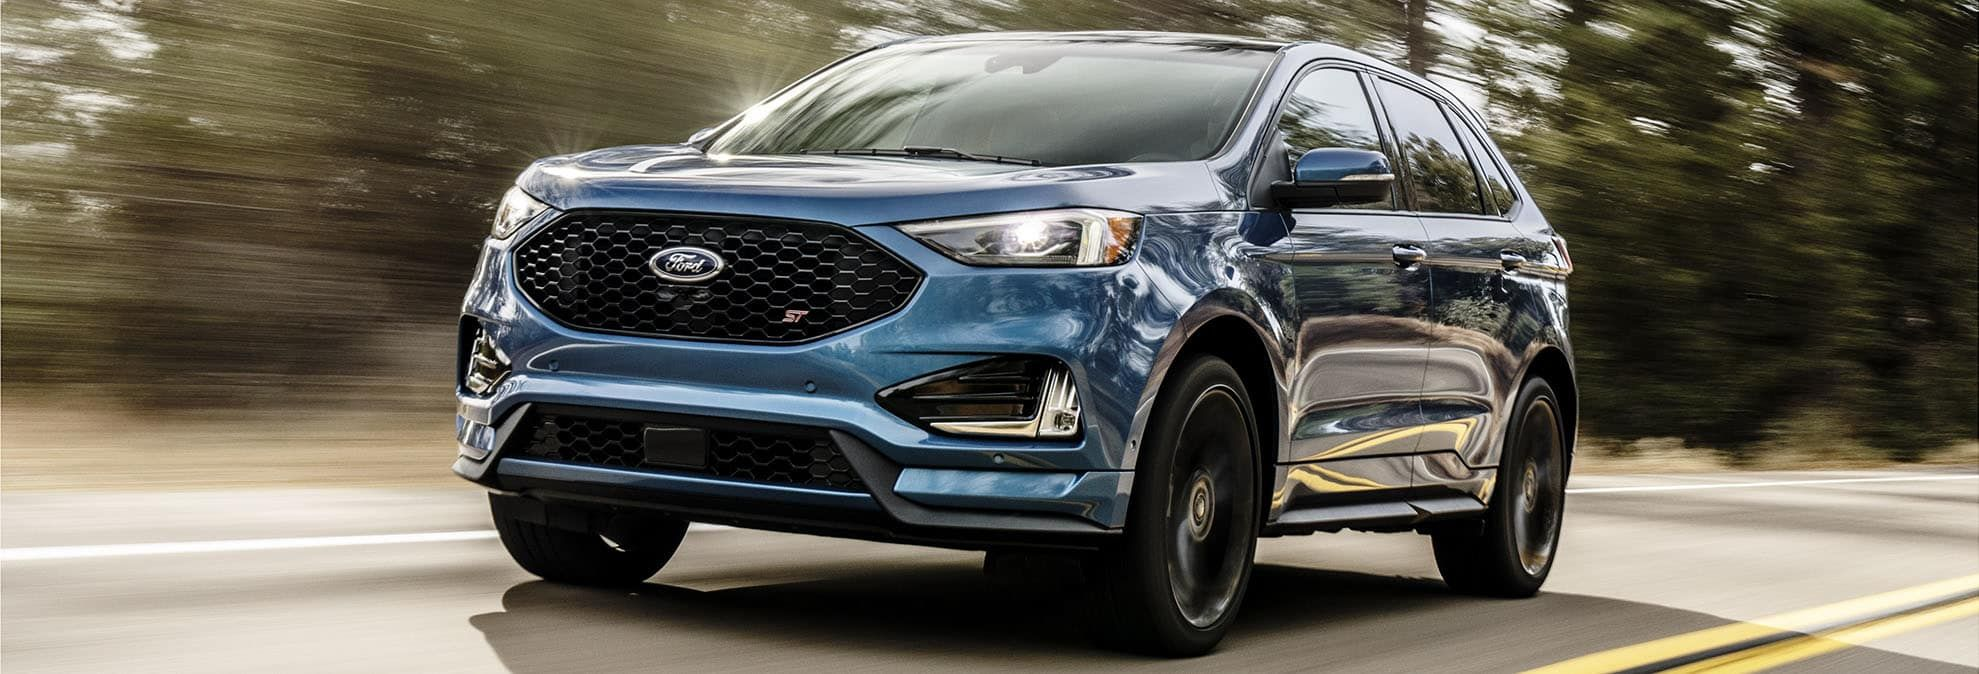 2019 Ford Edge Sport Changes Release Date Interior Colors